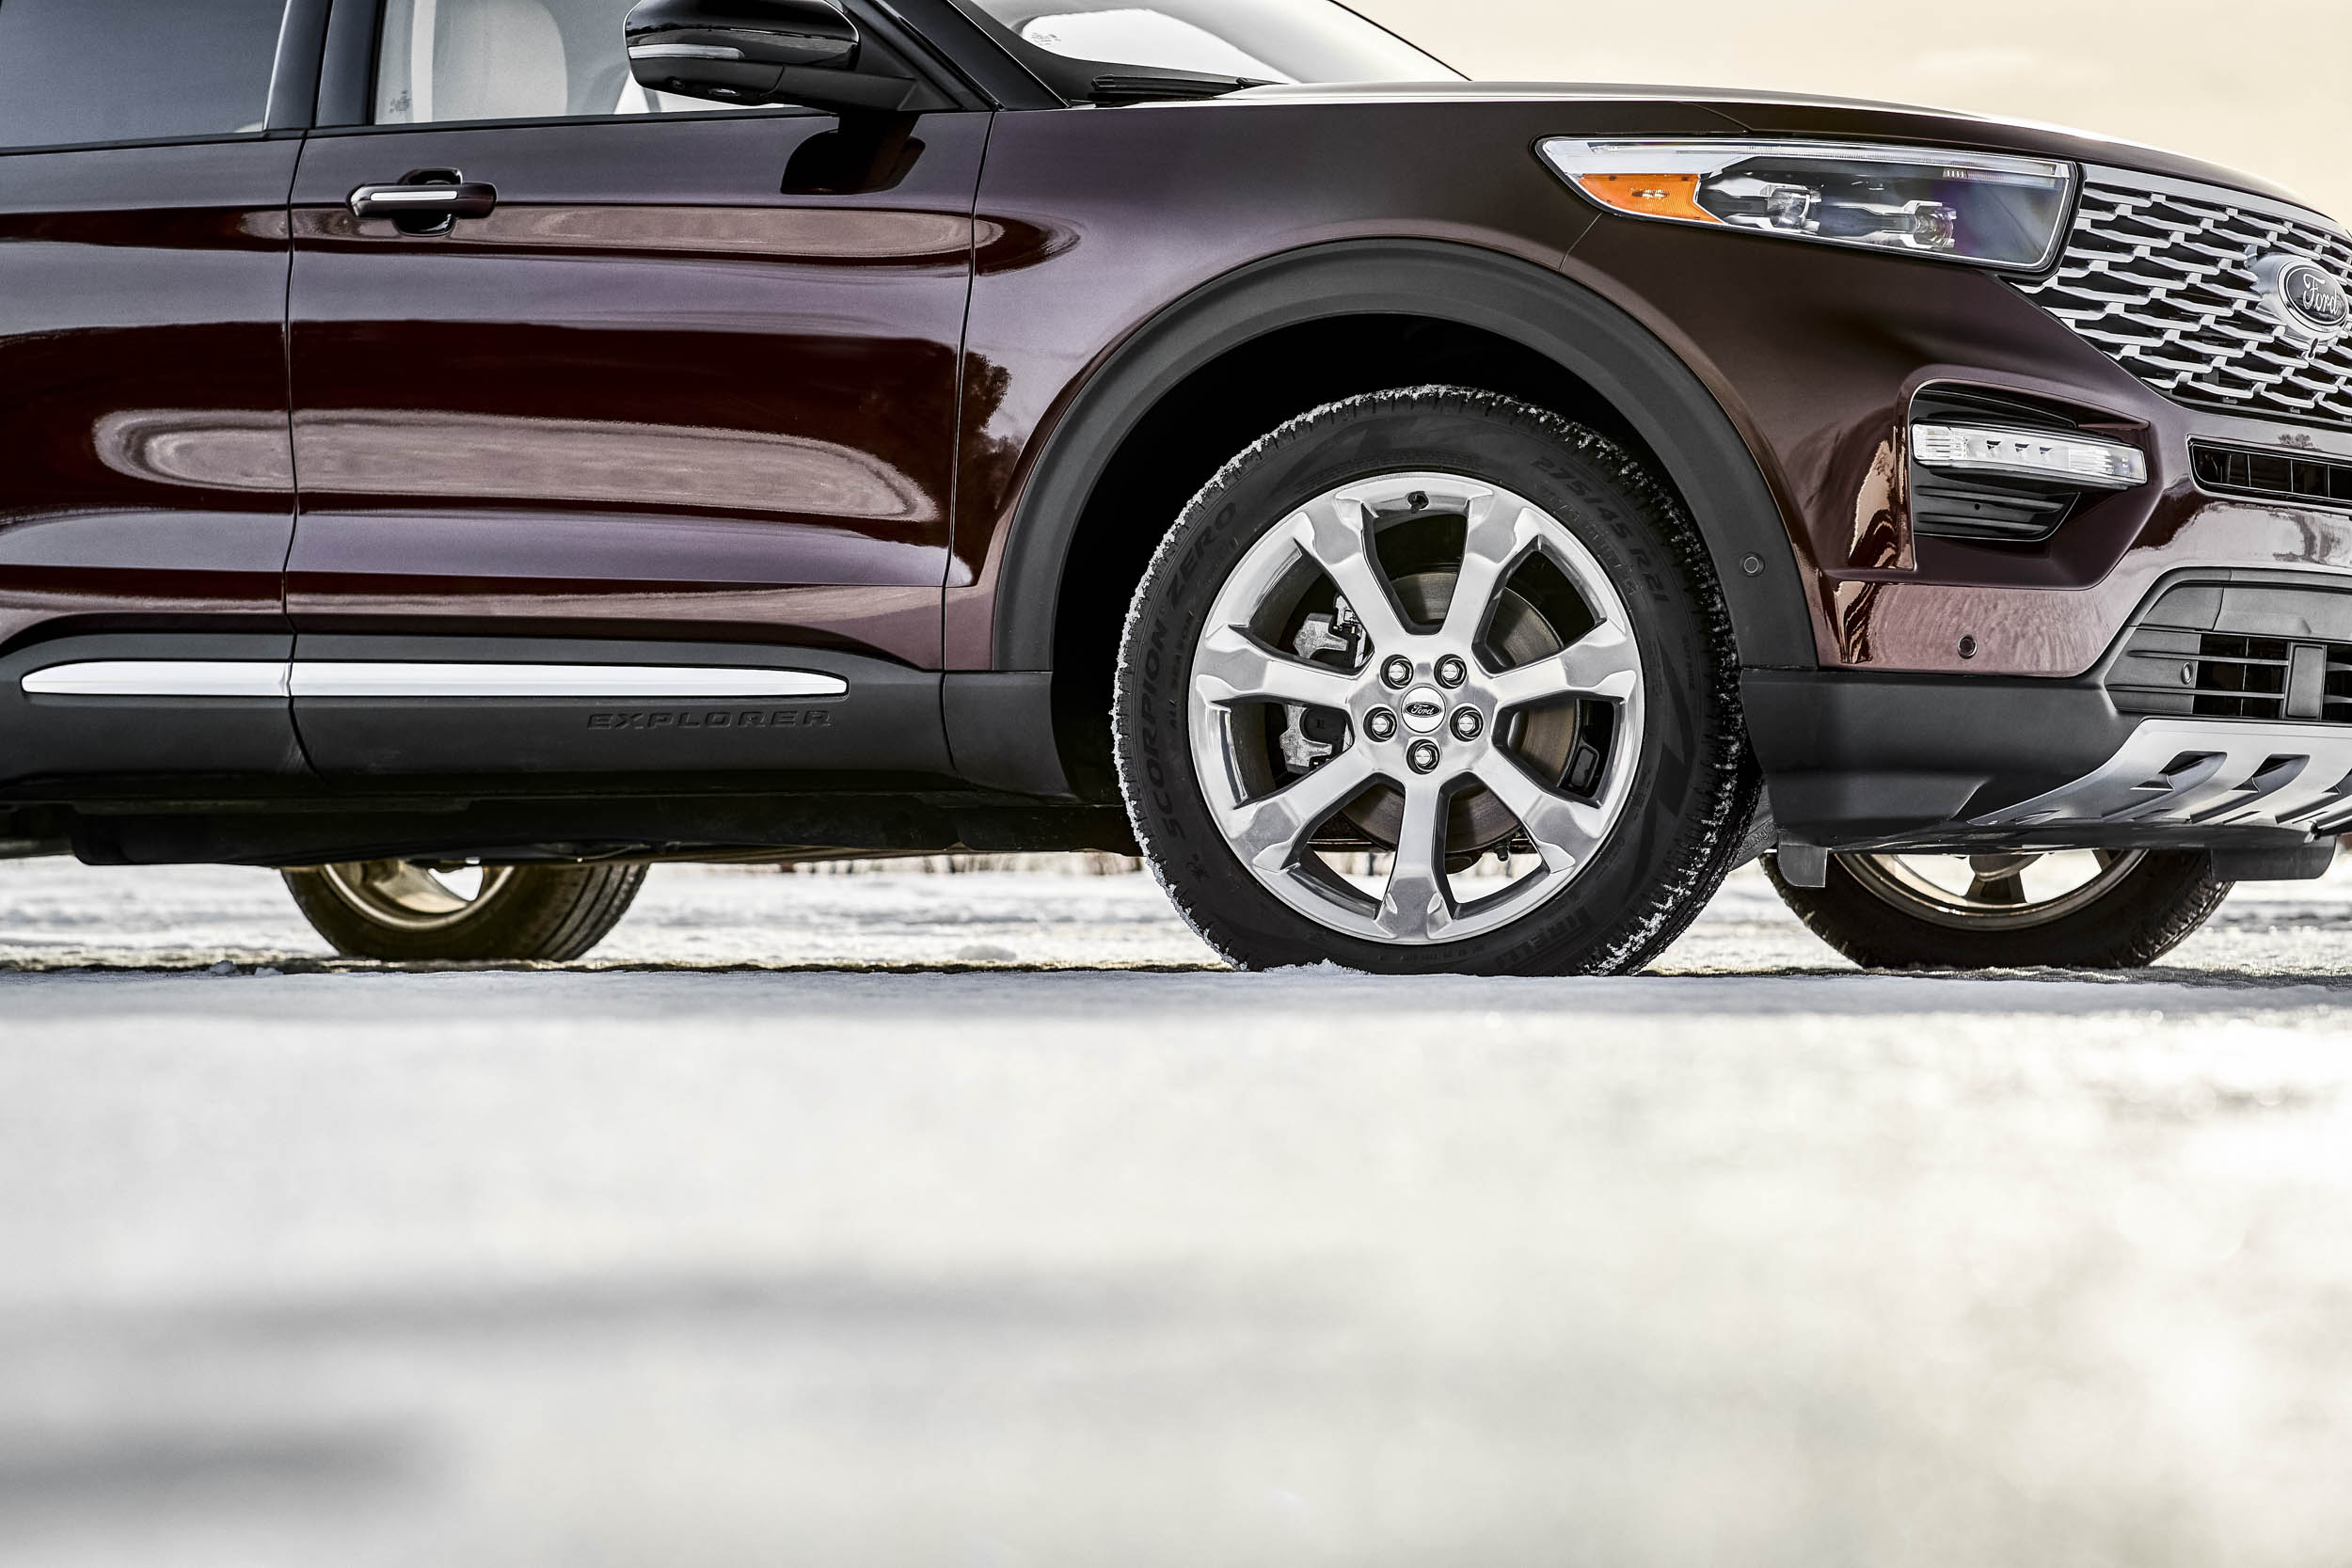 2020 Ford Explorer Platinum wheel